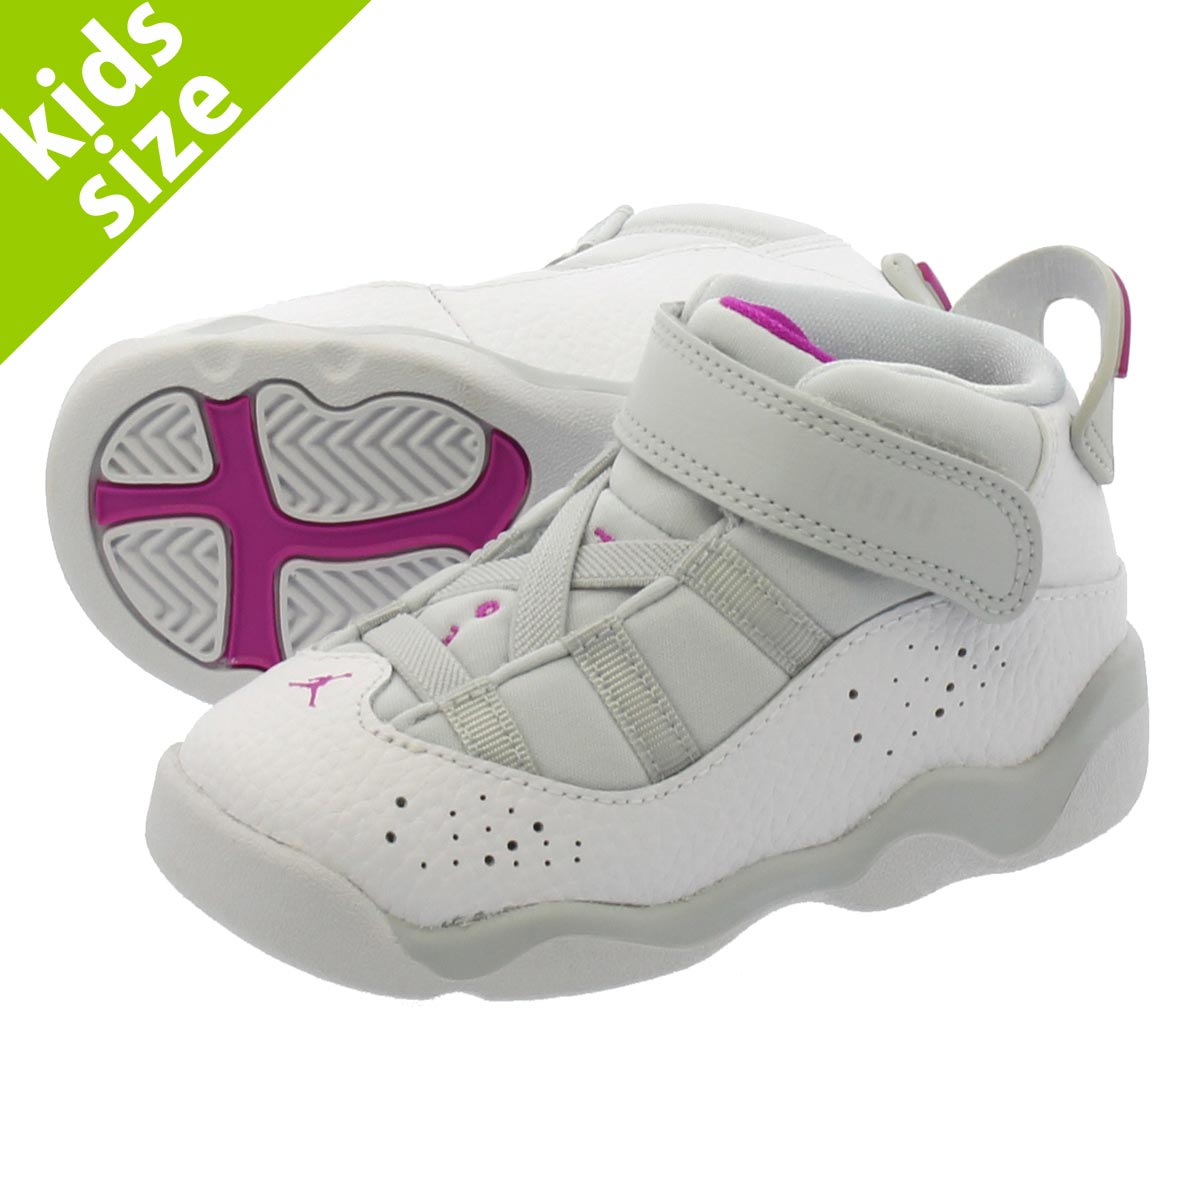 f9049a7d619 LOWTEX PLUS: NIKE JORDAN 6 RINGS GT Nike Air Jordan 6 RINGS Co.,Ltd. GT  PURE PLATINUM/FUCHSIA 942,780-011 | Rakuten Global Market